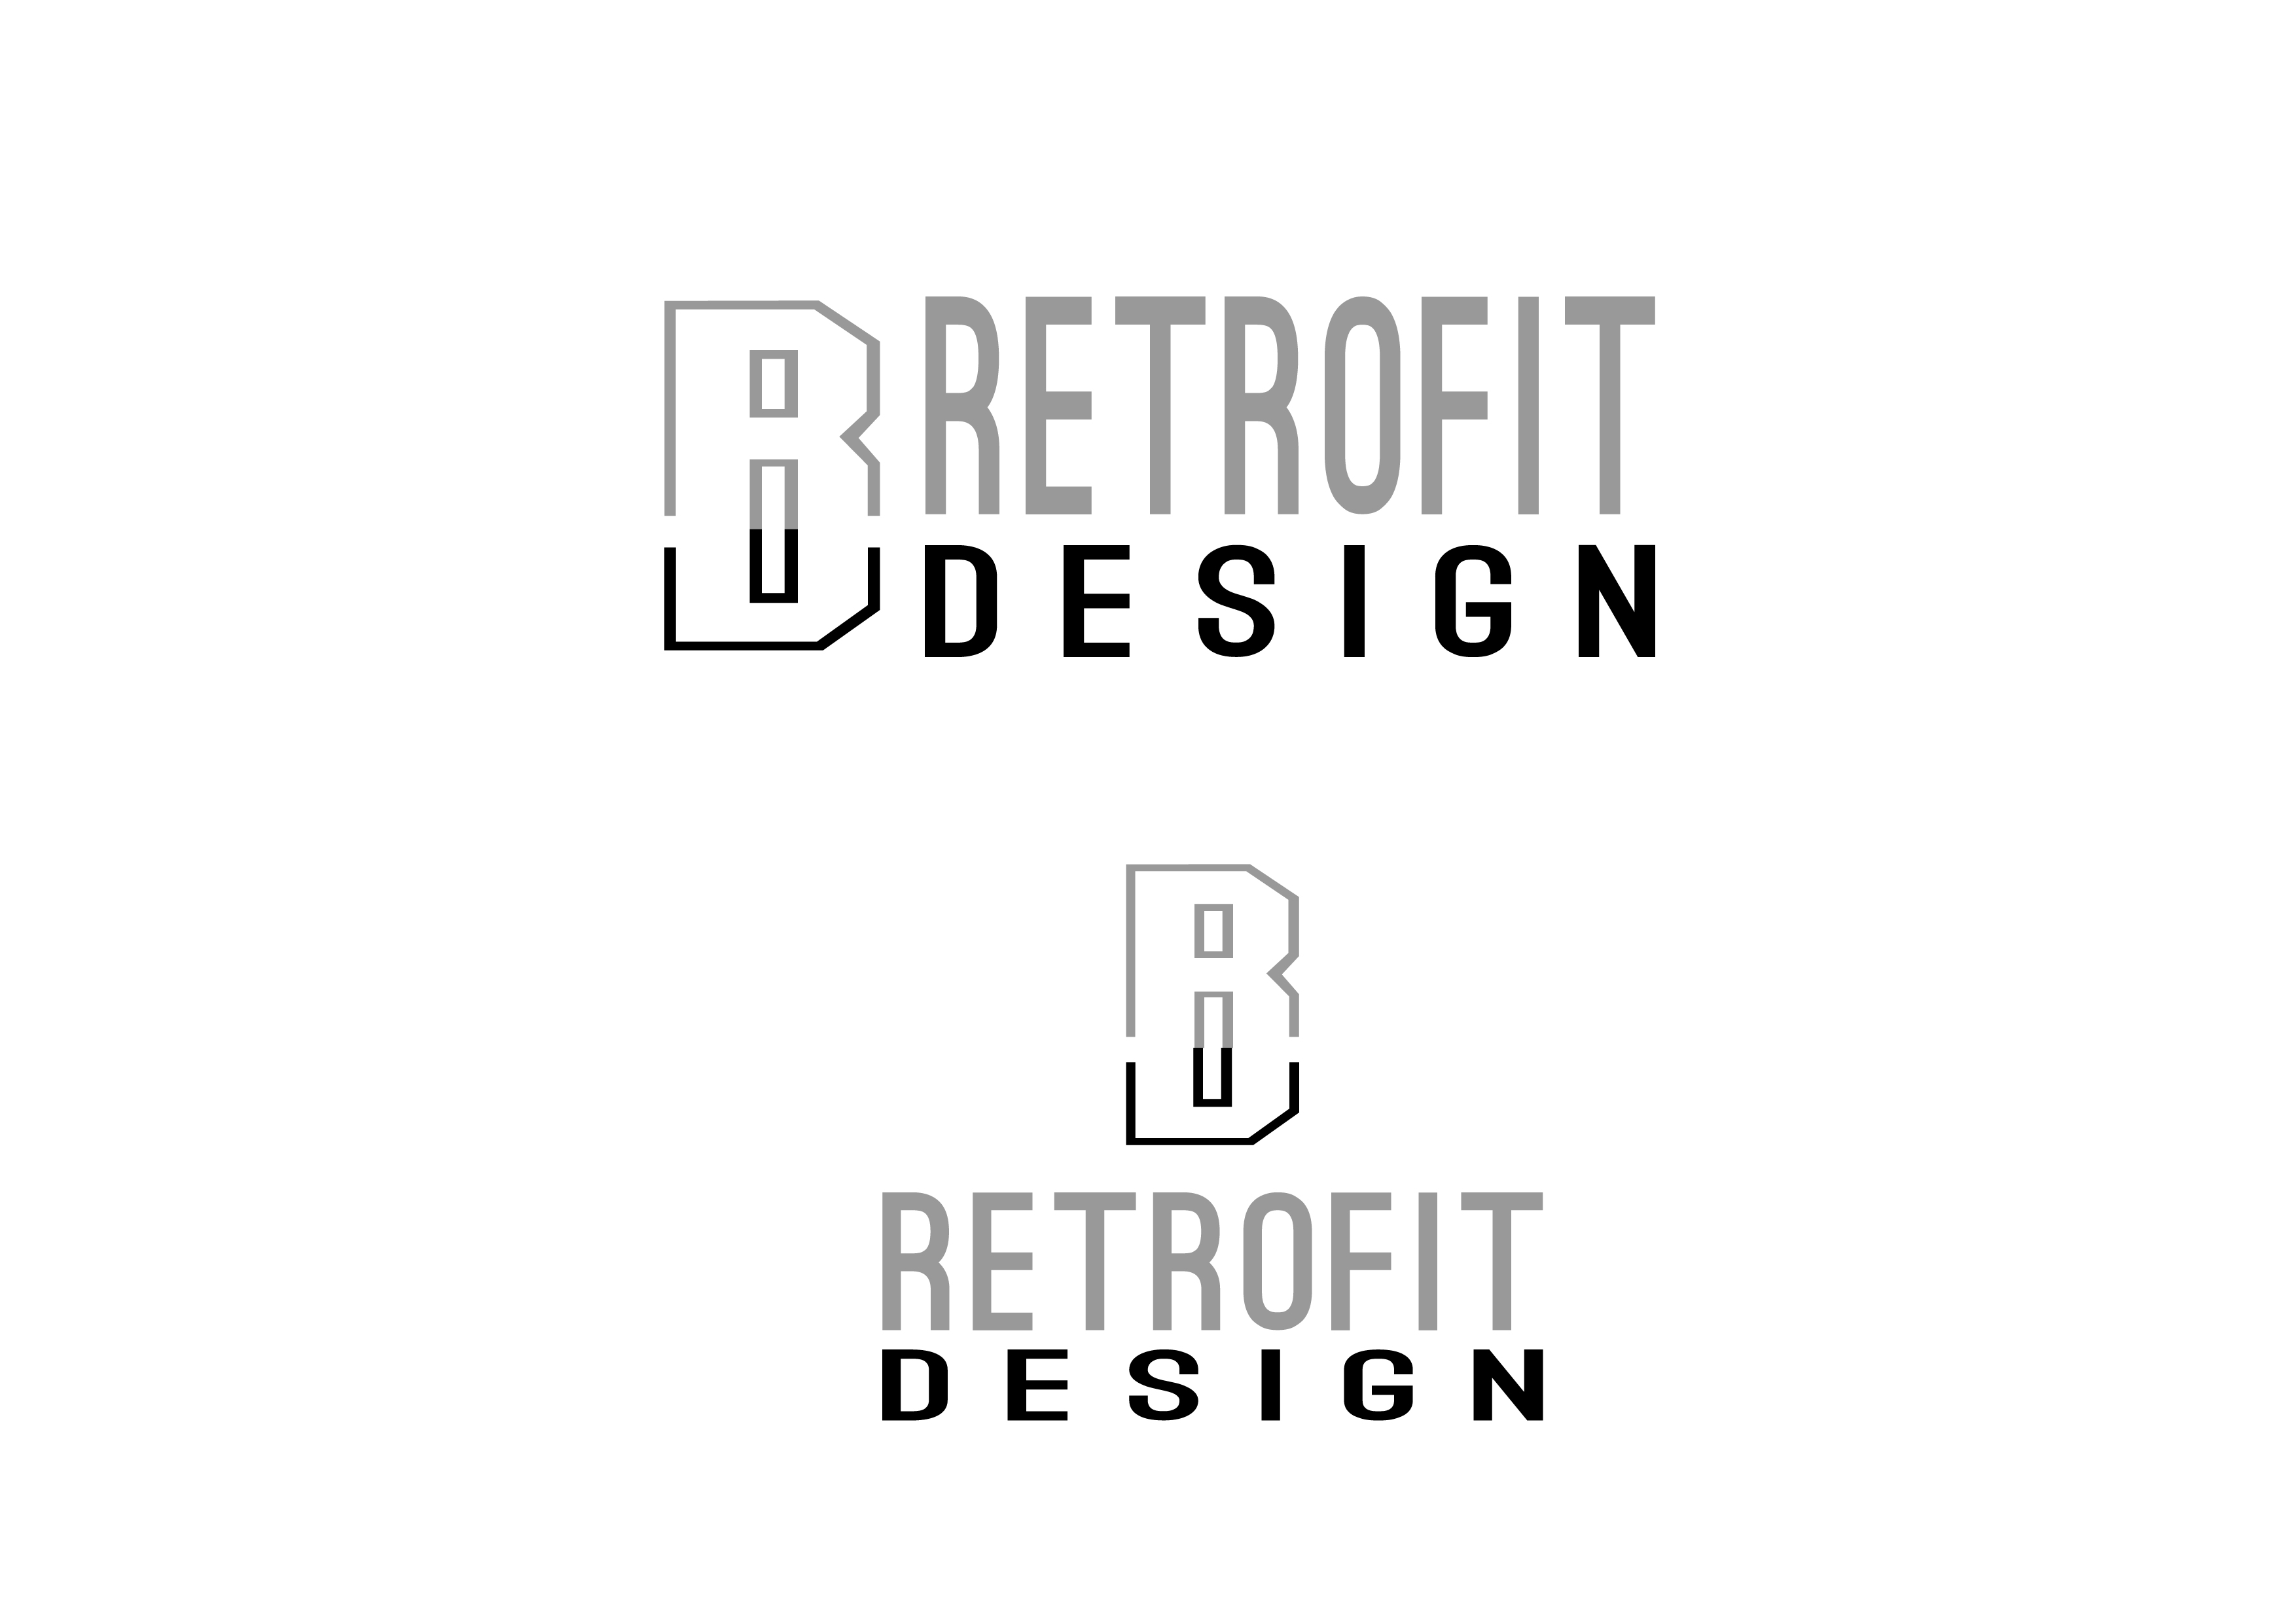 Logo Design by 3draw - Entry No. 180 in the Logo Design Contest Inspiring Logo Design for retrofit design.